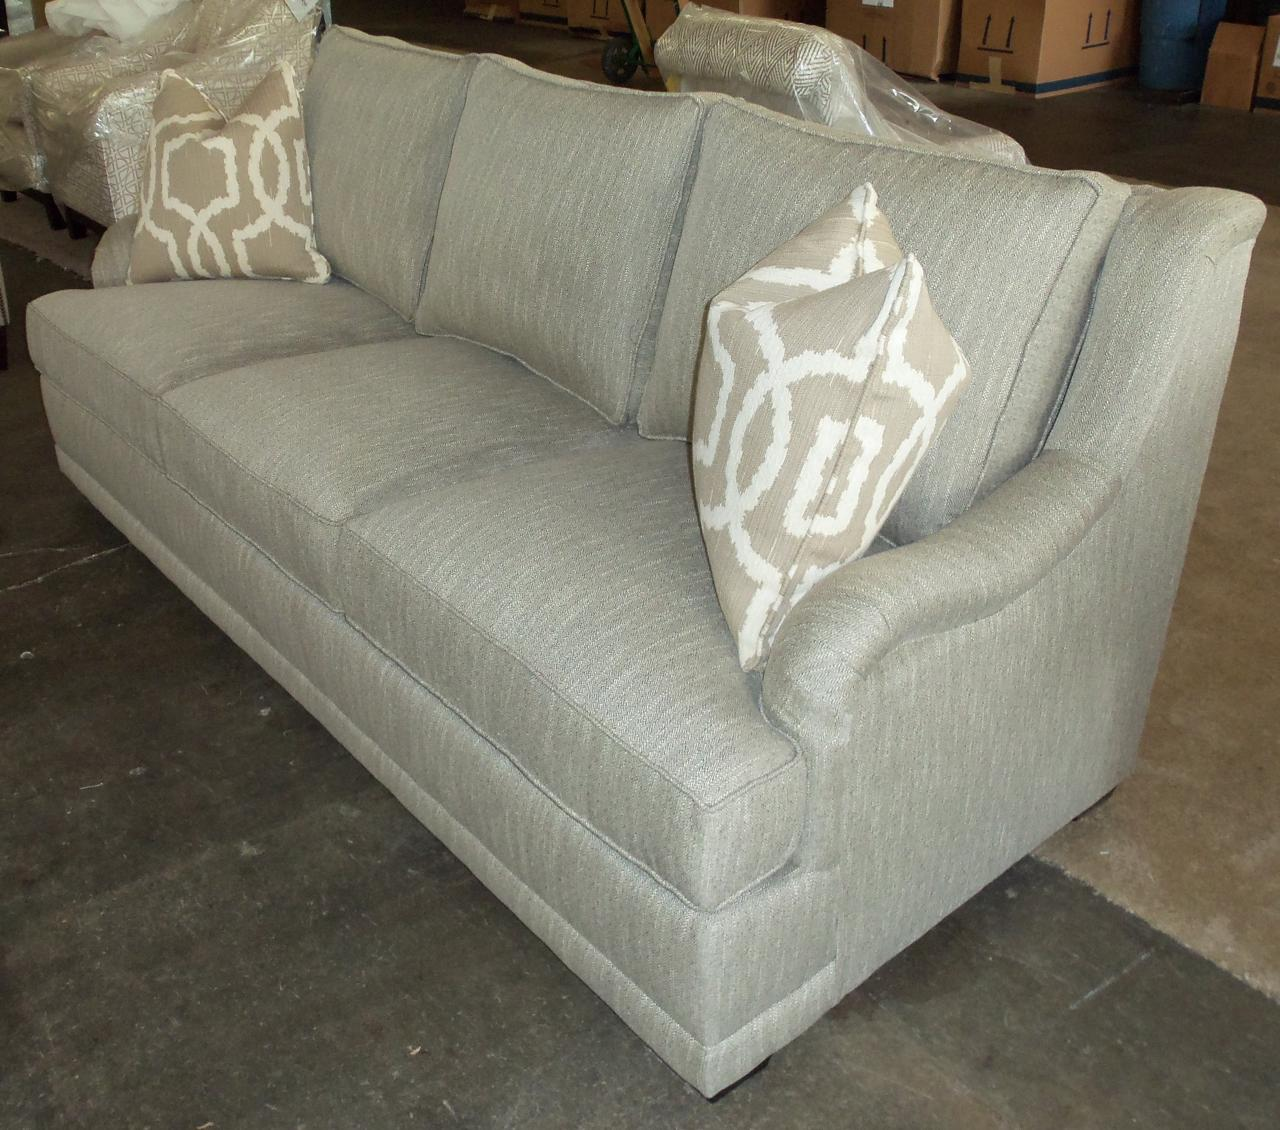 sofa under 20000 cost plus world market table clayton marcus sofas prices lovely